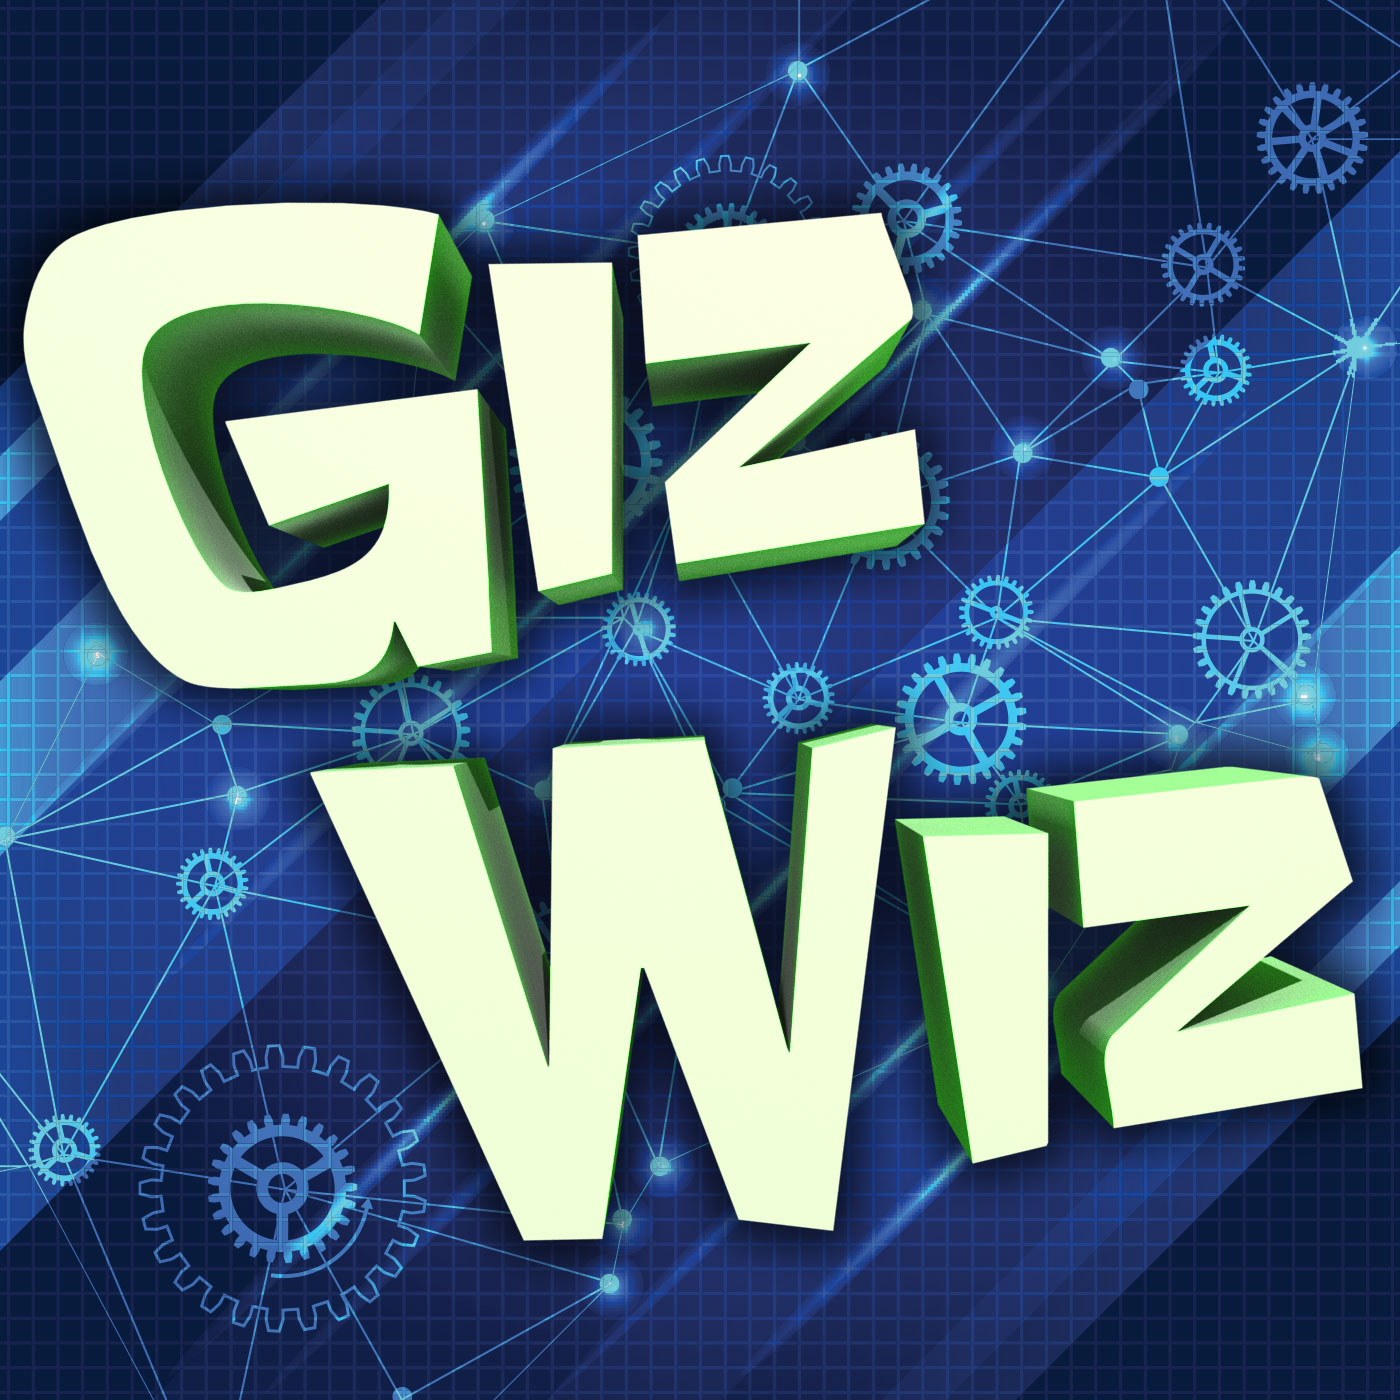 The Giz Wiz (SD Video)